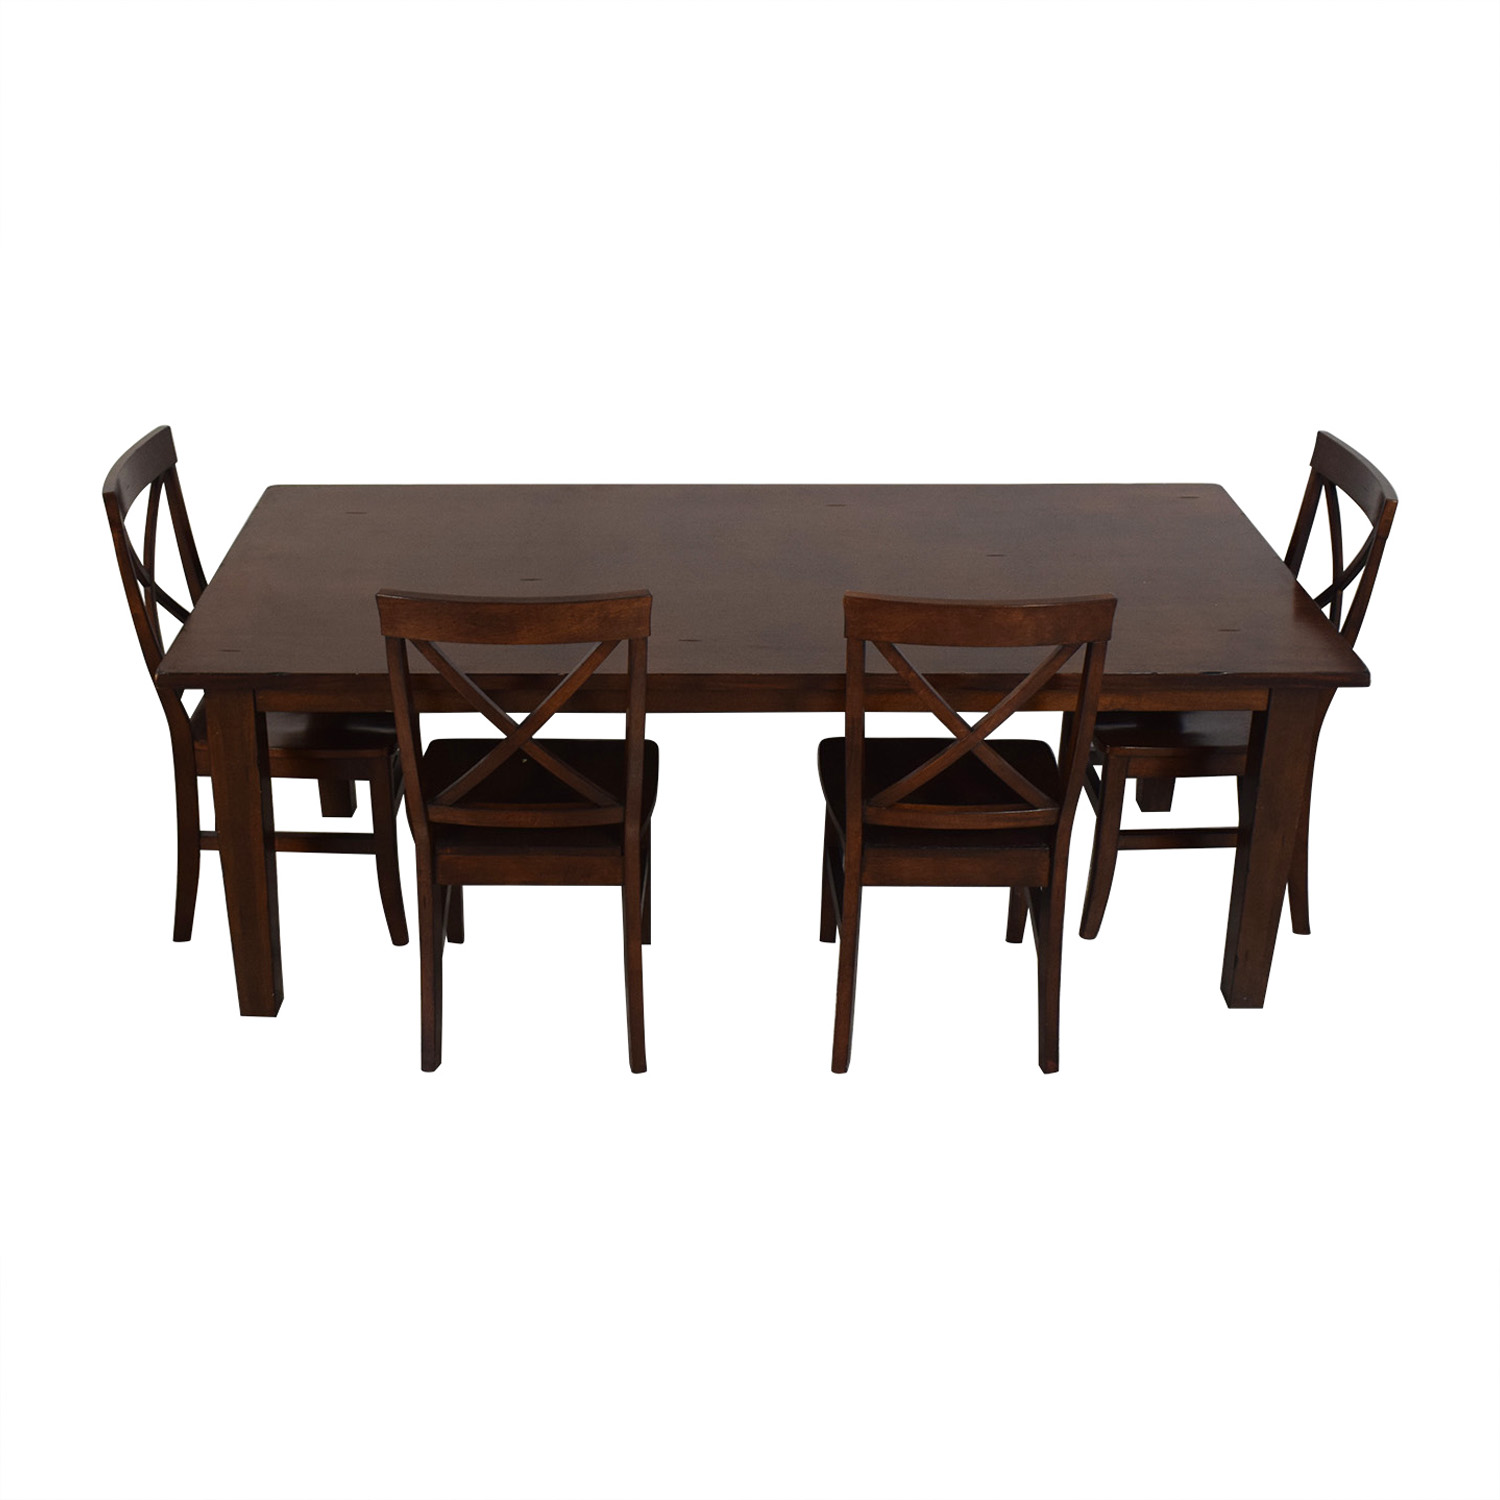 Pier 1 Pier 1 Five-Piece Dining Set second hand